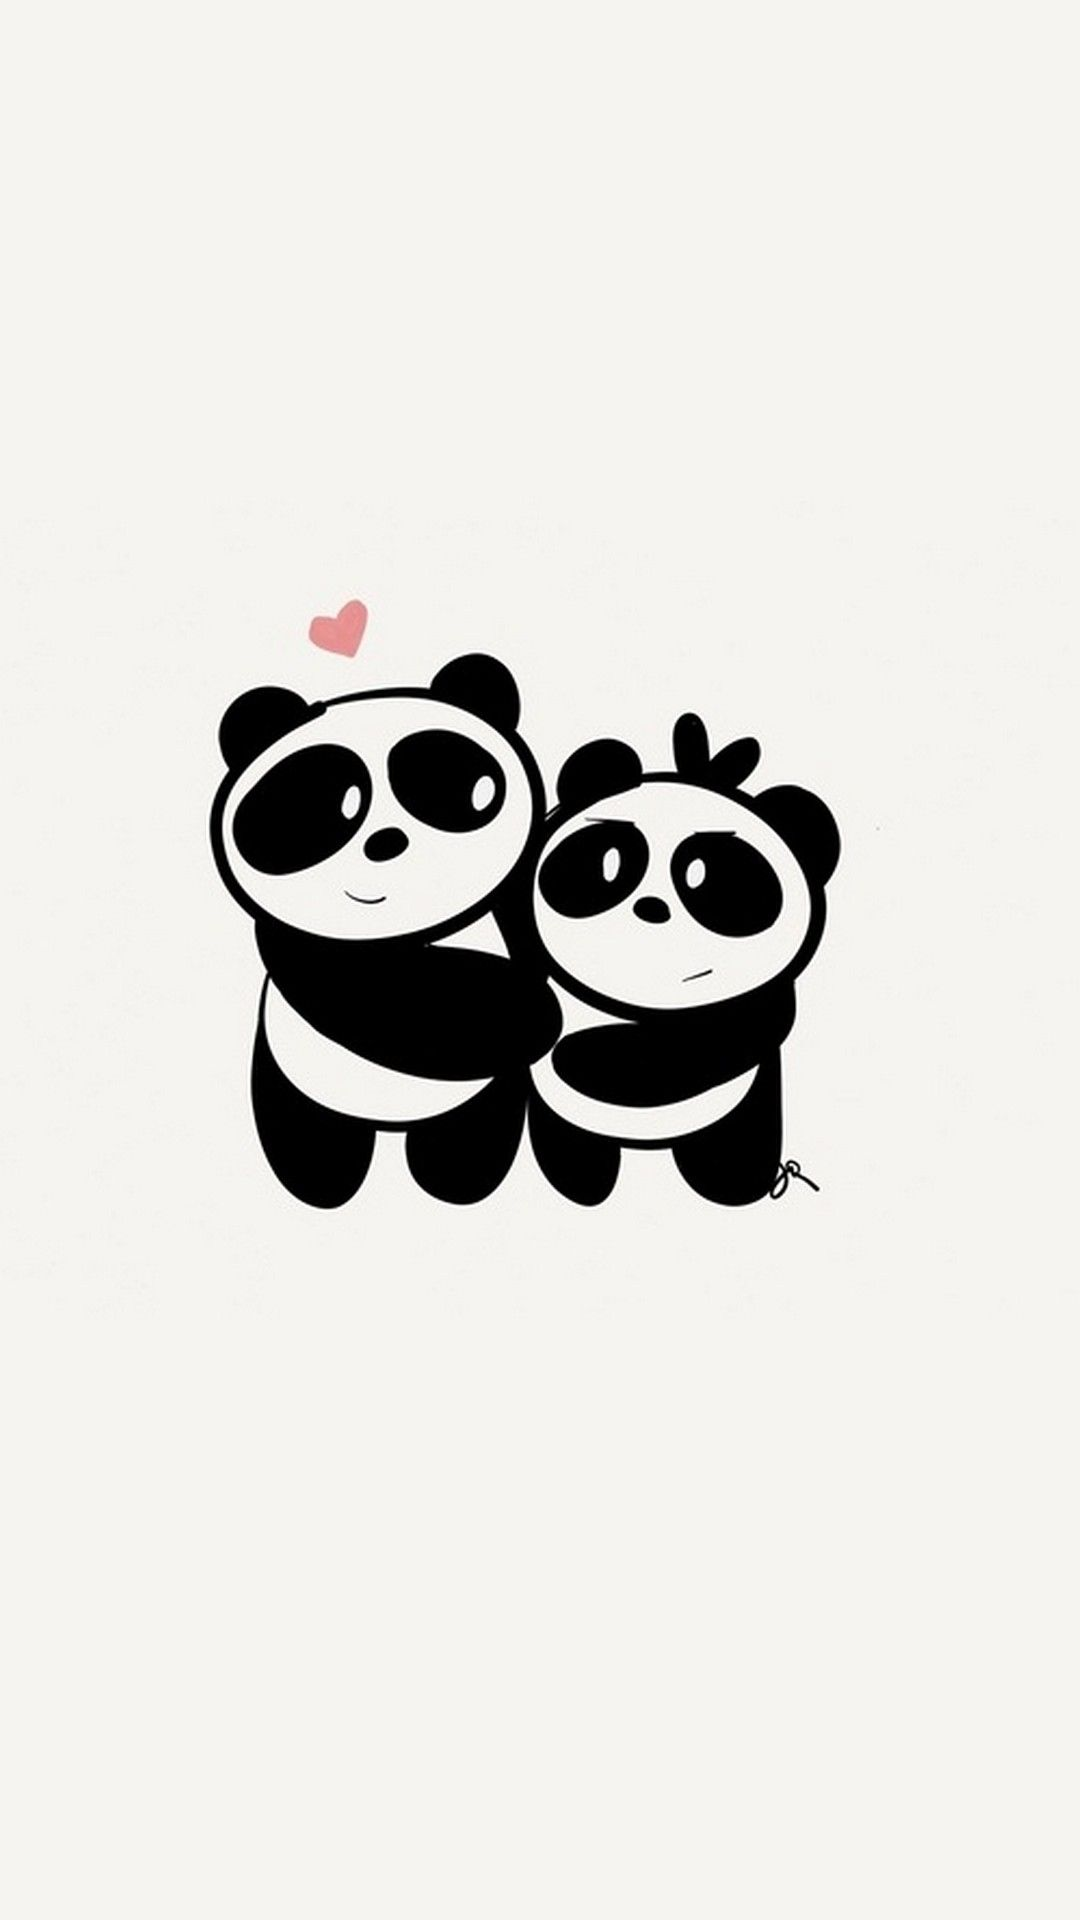 IPhone X Cute Couple Panda Wallpaper Is High Definition Phone You Can Make This For Your 5 6 7 8 Backgrounds Tablet